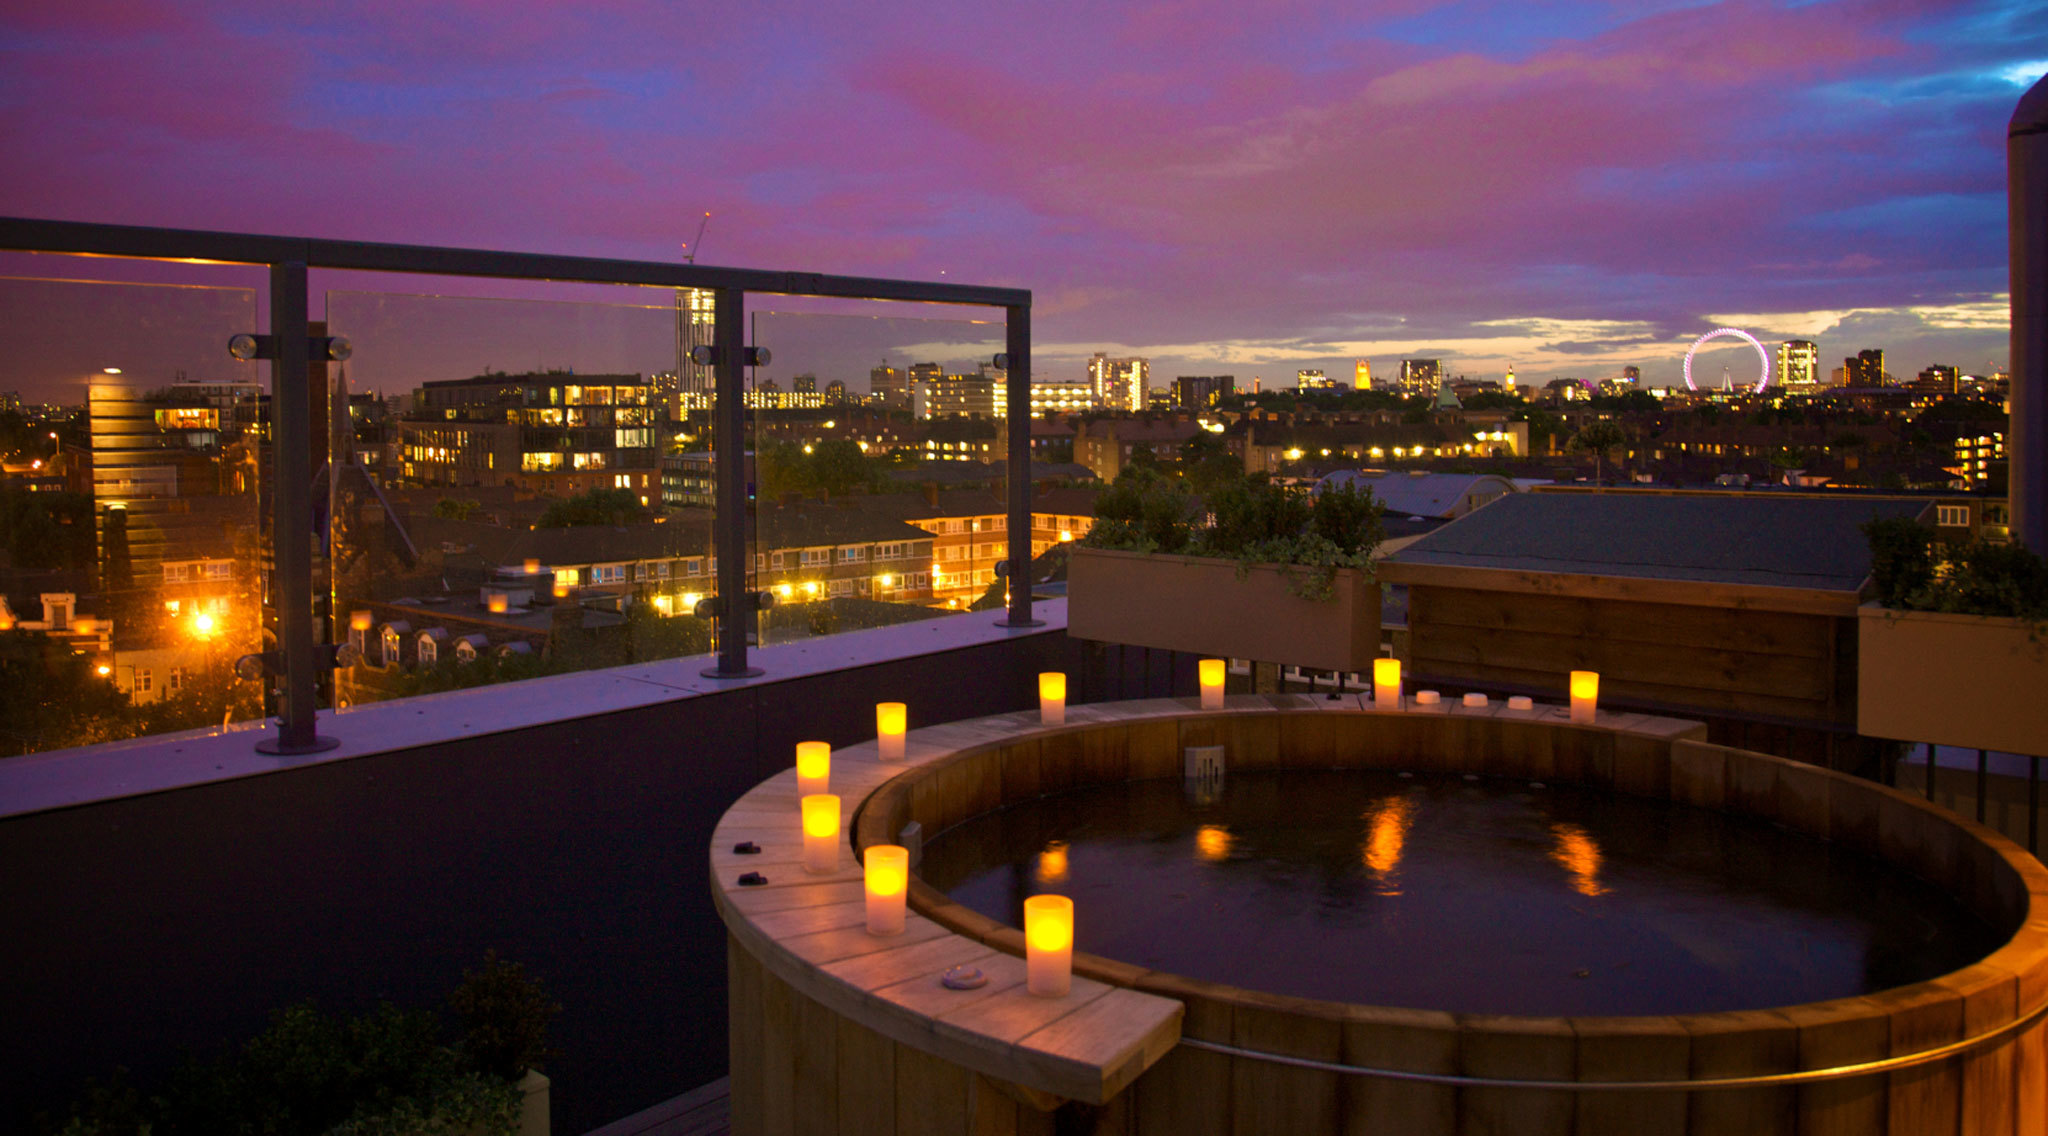 Romantic Hotel London Hot Tub